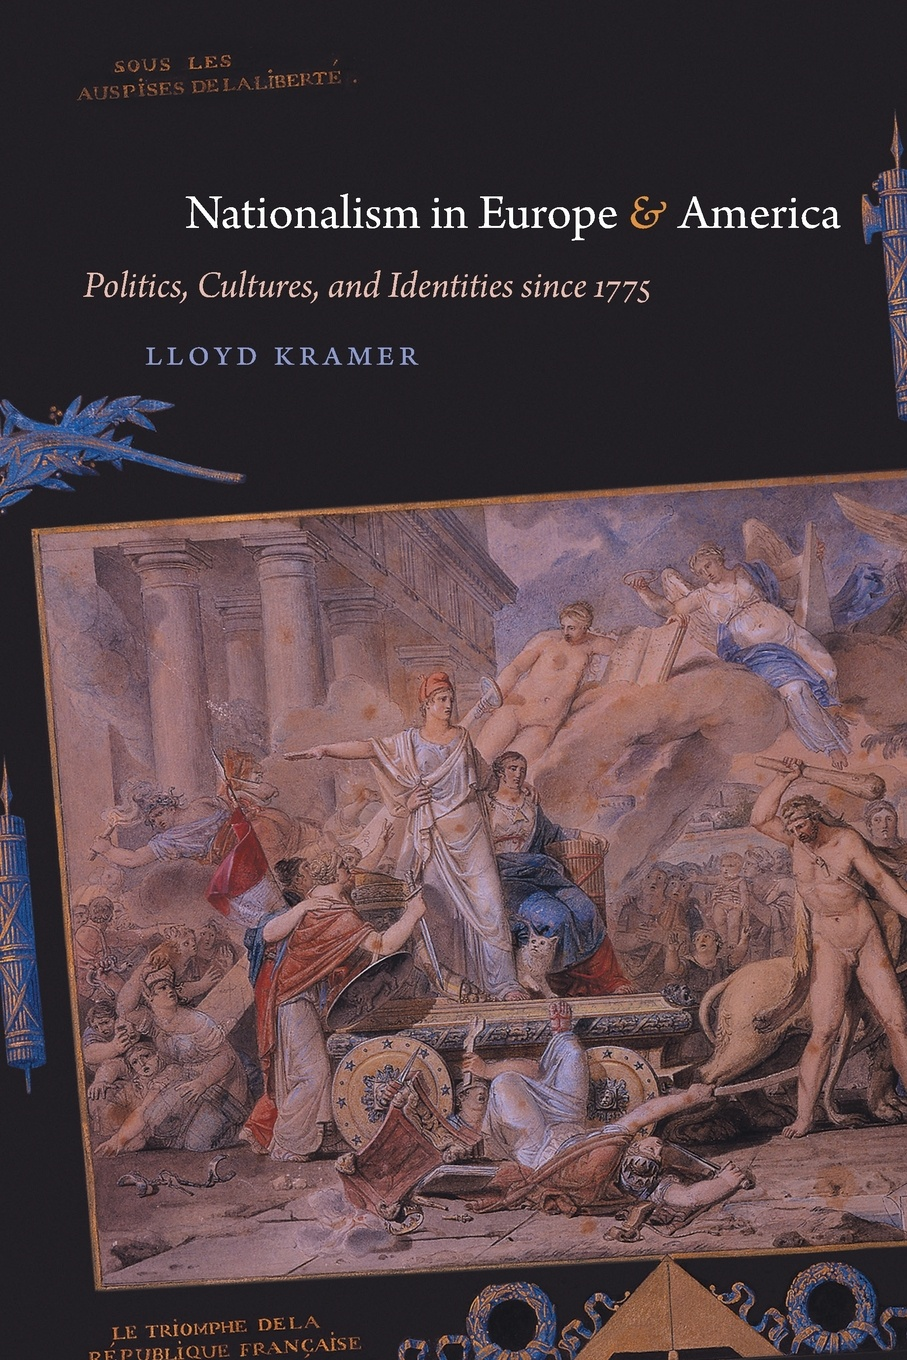 Lloyd S. Kramer Nationalism in Europe and America. Politics, Cultures, and Identities since 1775 lloyd s kramer nationalism in europe and america politics cultures and identities since 1775